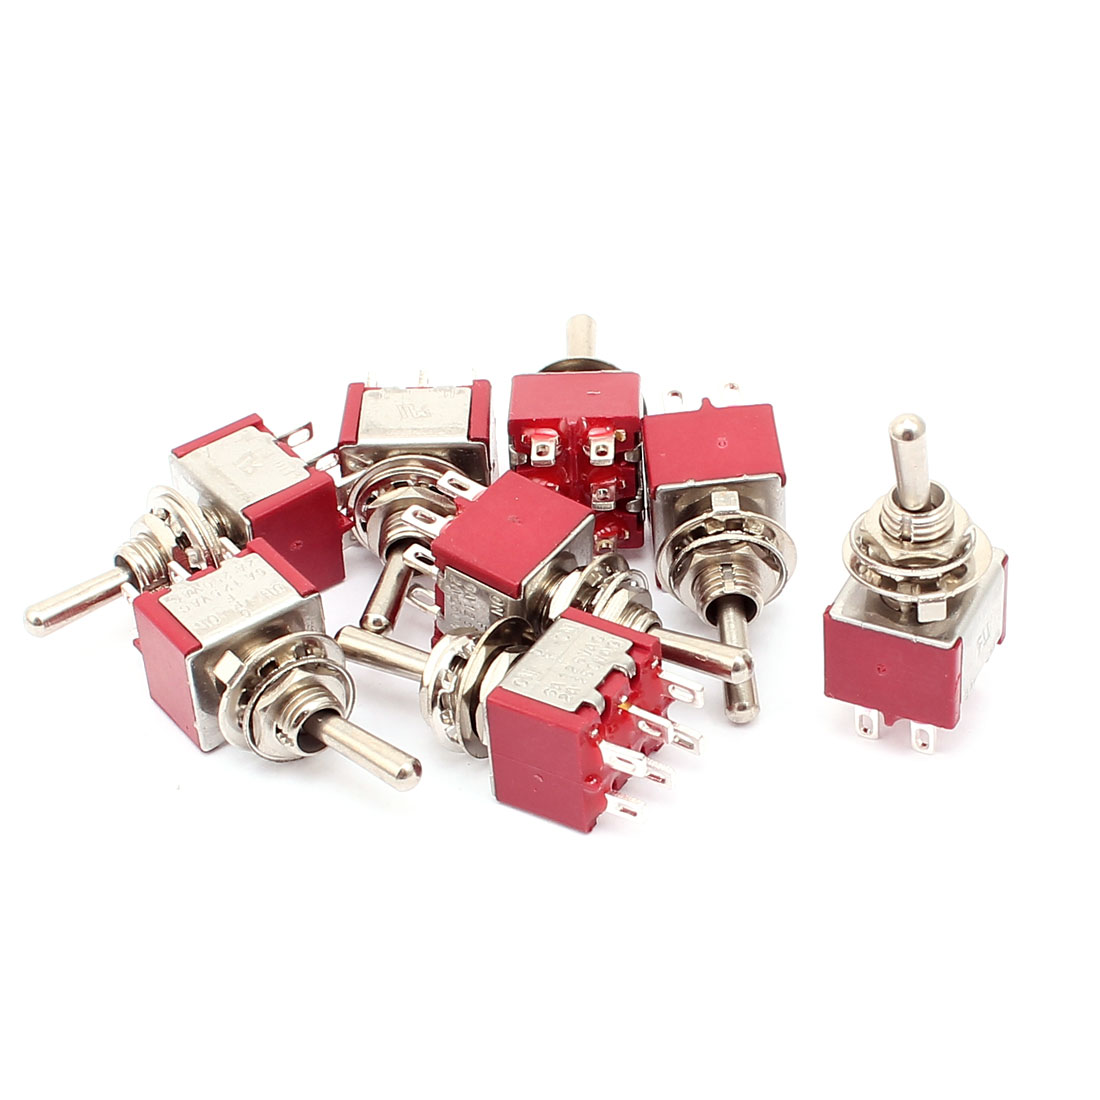 8 Pcs AC 250V 5A Toggle Switch DPDT ON-OFF-ON Switch Silver Tone